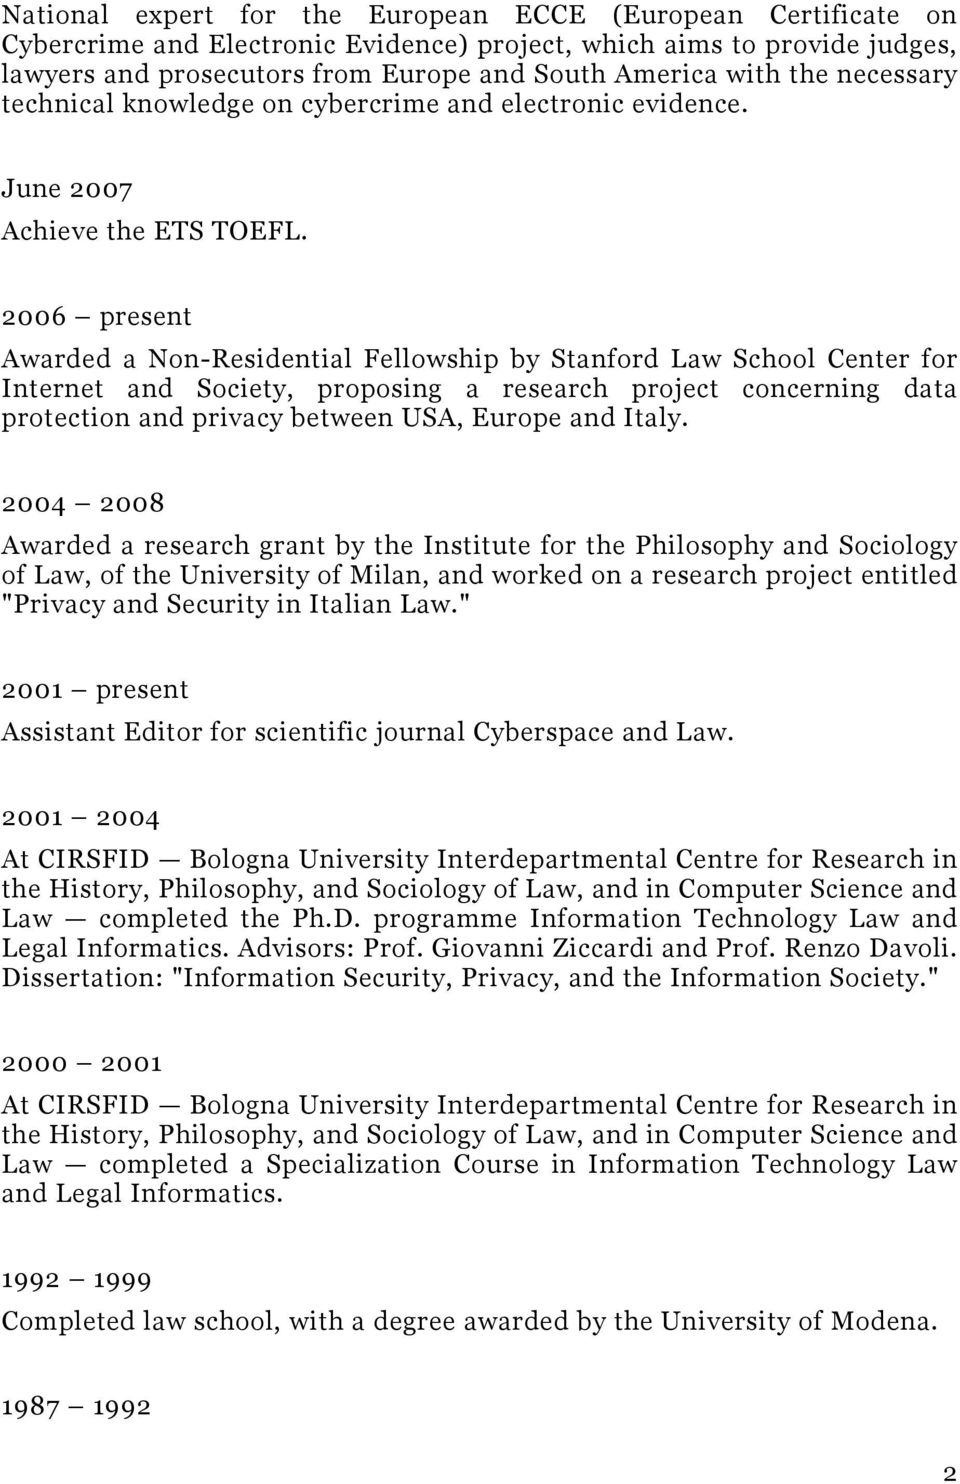 2006 present Awarded a Non-Residential Fellowship by Stanford Law School Center for Internet and Society, proposing a research project concerning data protection and privacy between USA, Europe and